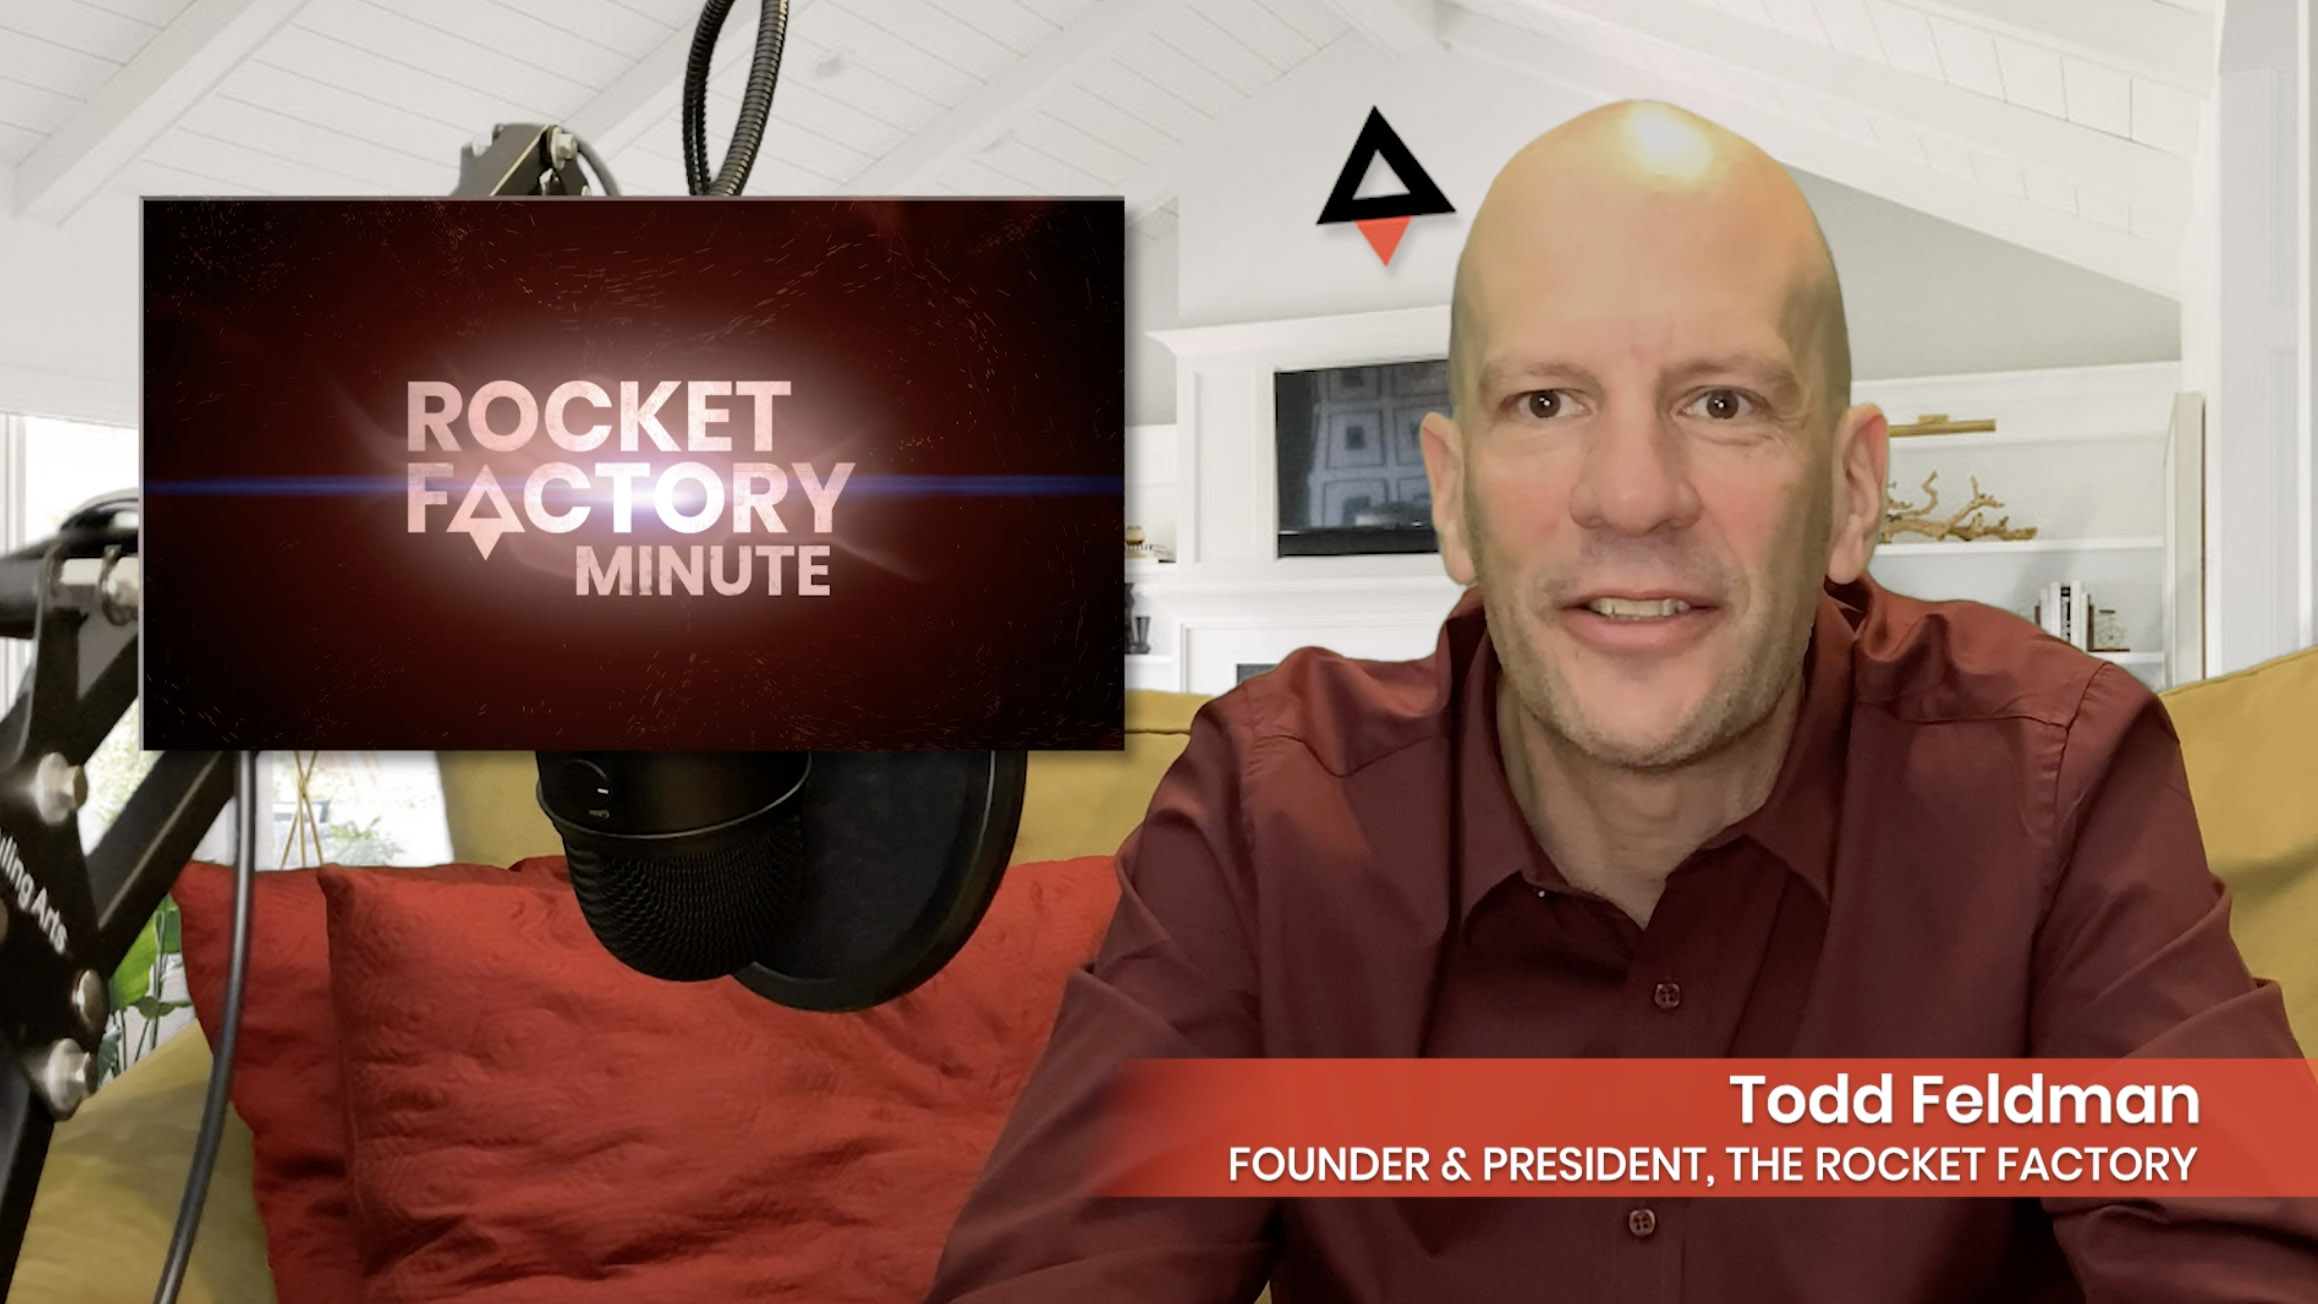 The Rocket Factory Minute